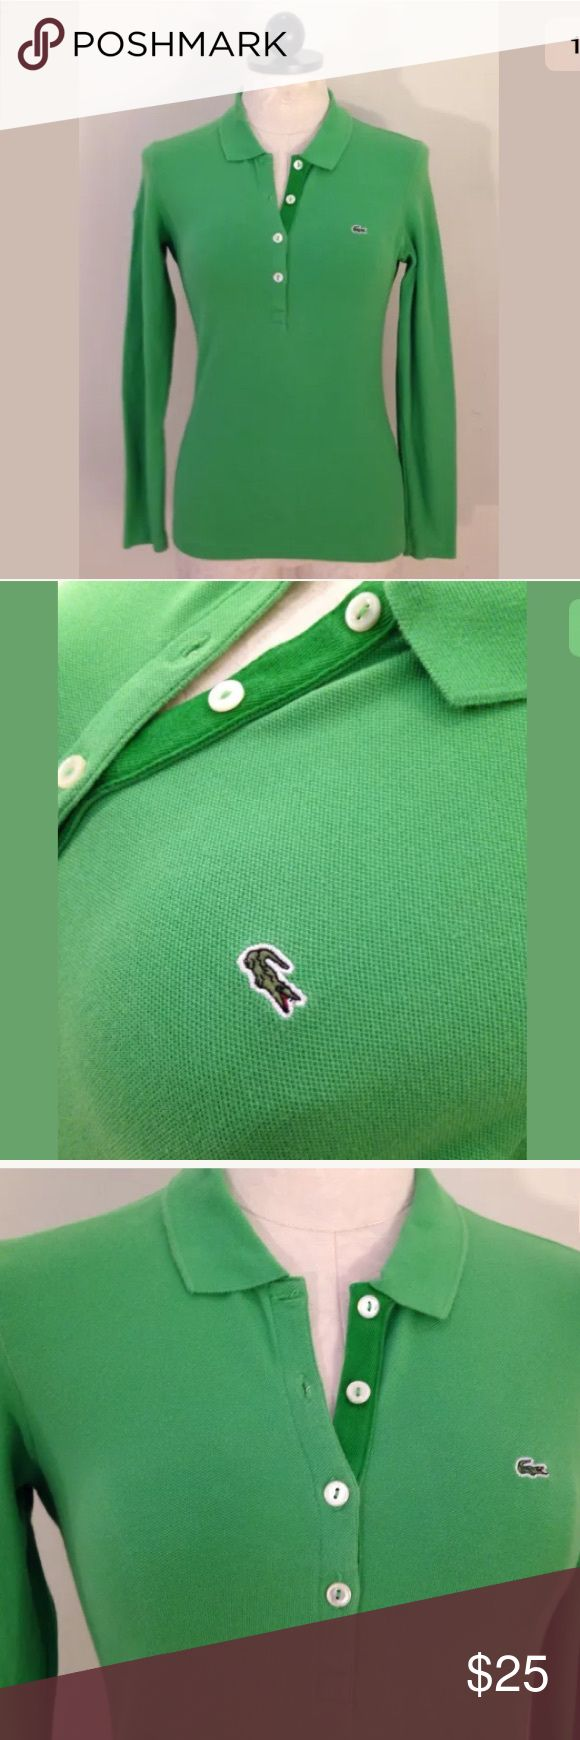 Selling this Women's Lacoste 6 green long sleeve polo shirt 38 on Poshmark! My username is: jesseblackbear. #shopmycloset #poshmark #fashion #shopping #style #forsale #Lacoste #Tops